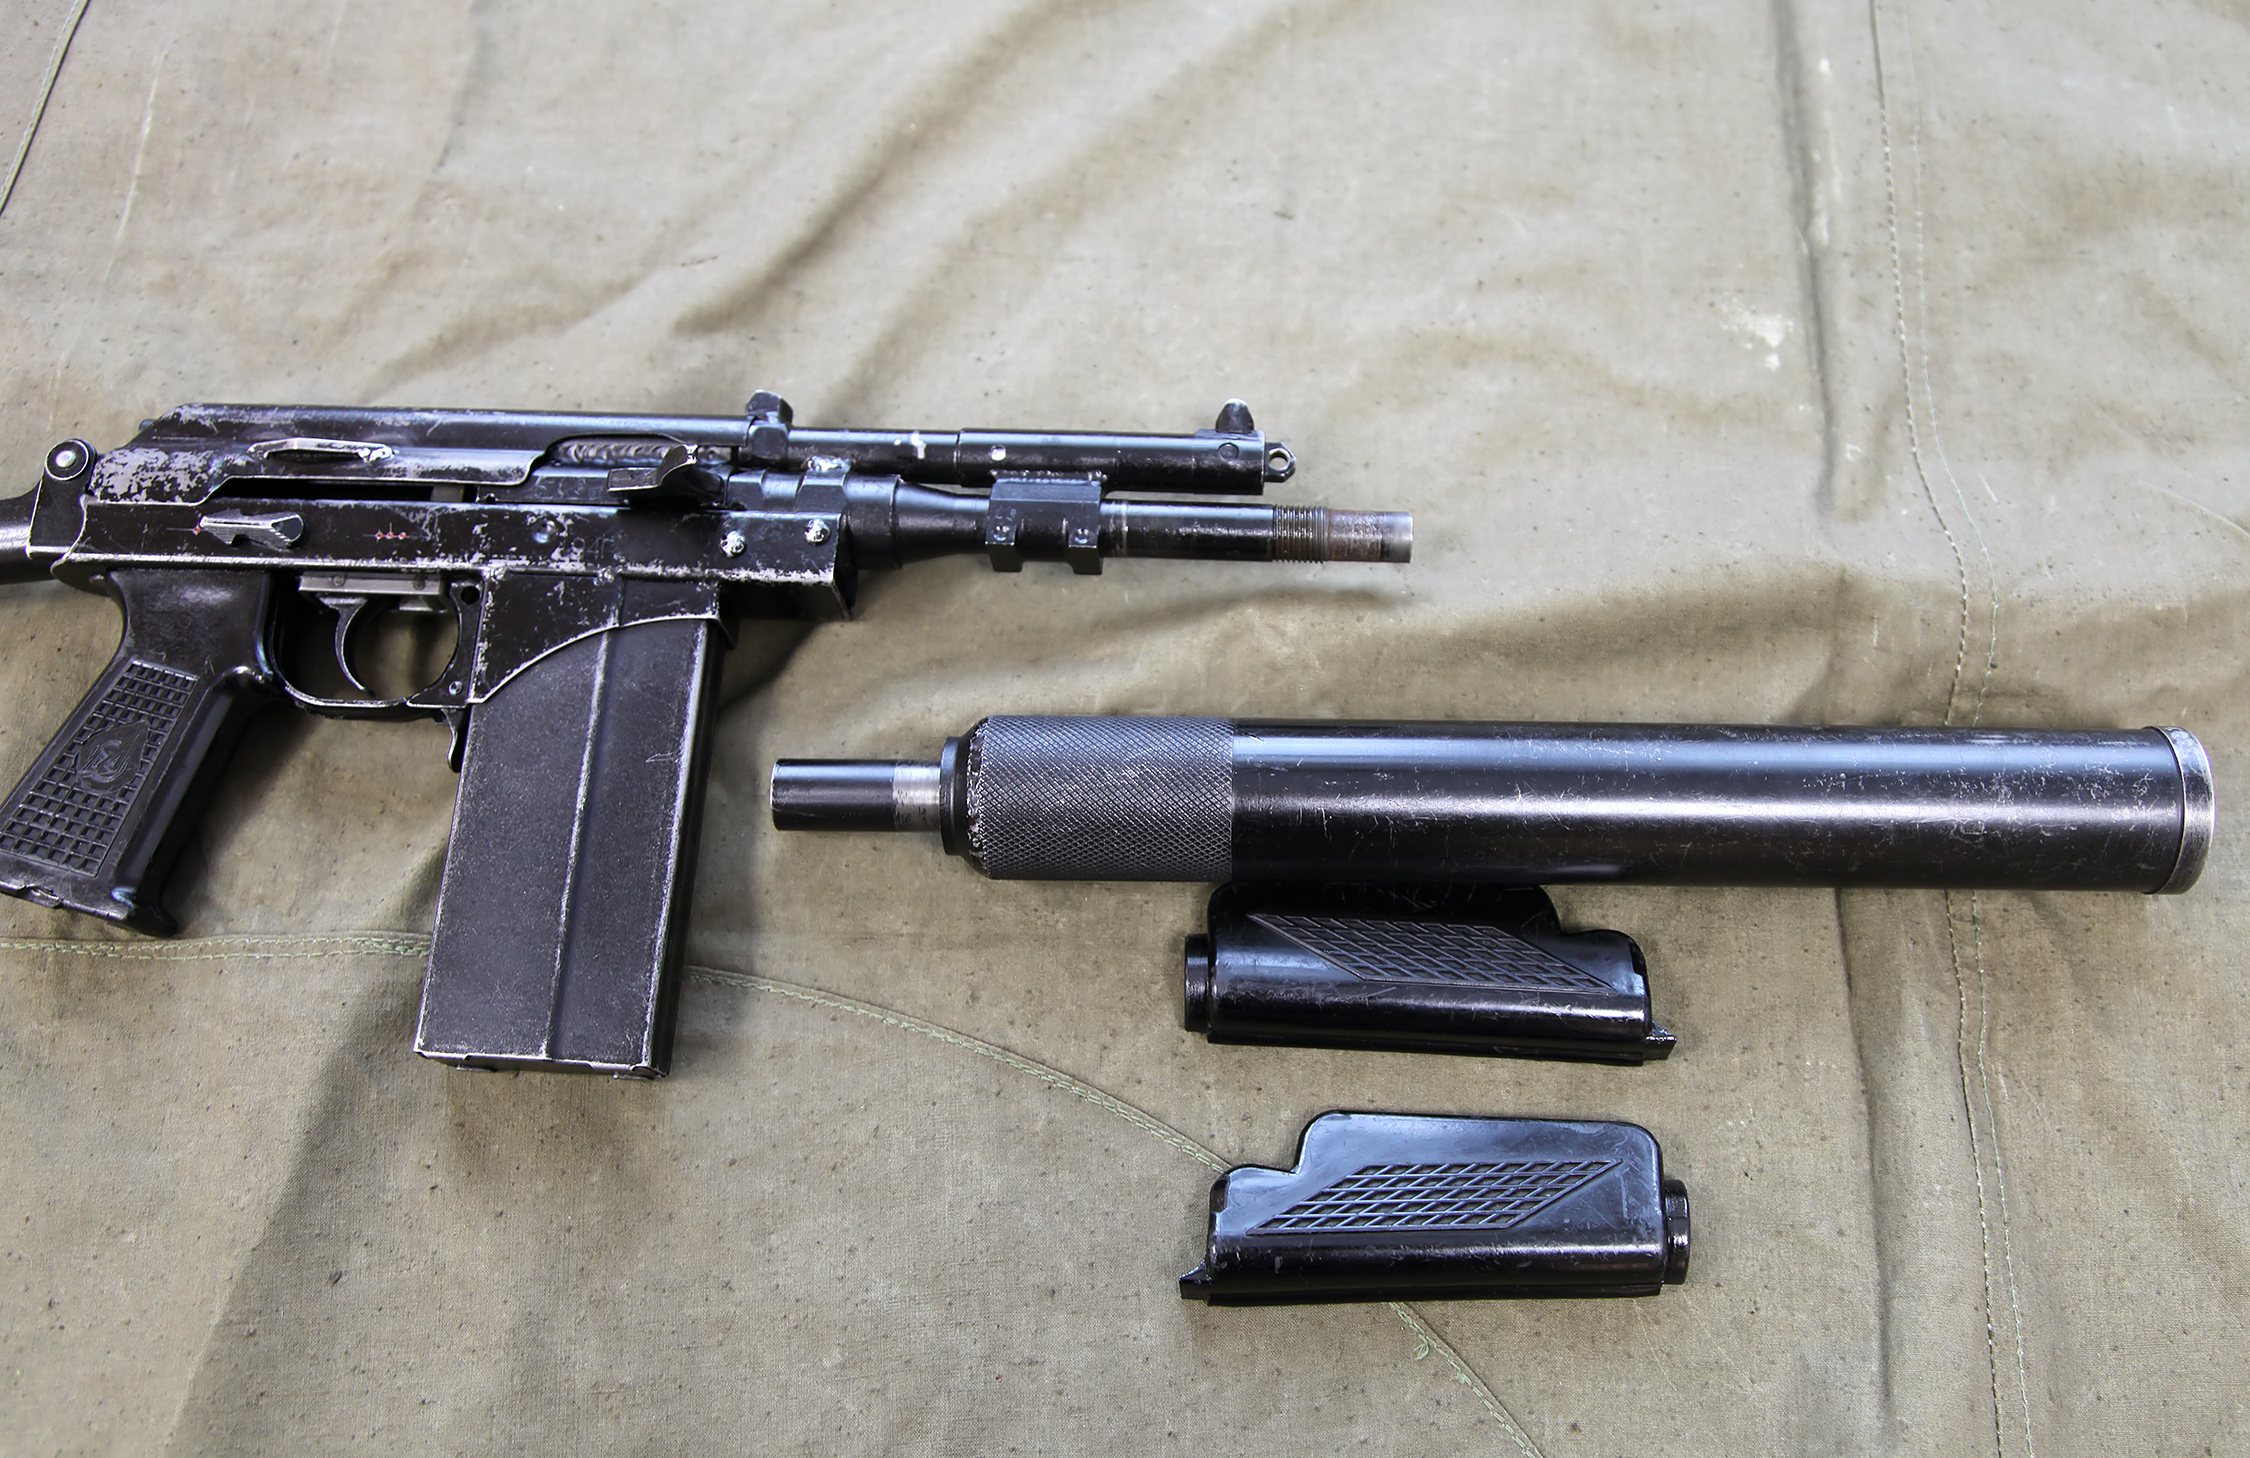 File:9mm KBP 9A-91 compact assault rifle - 40.jpg